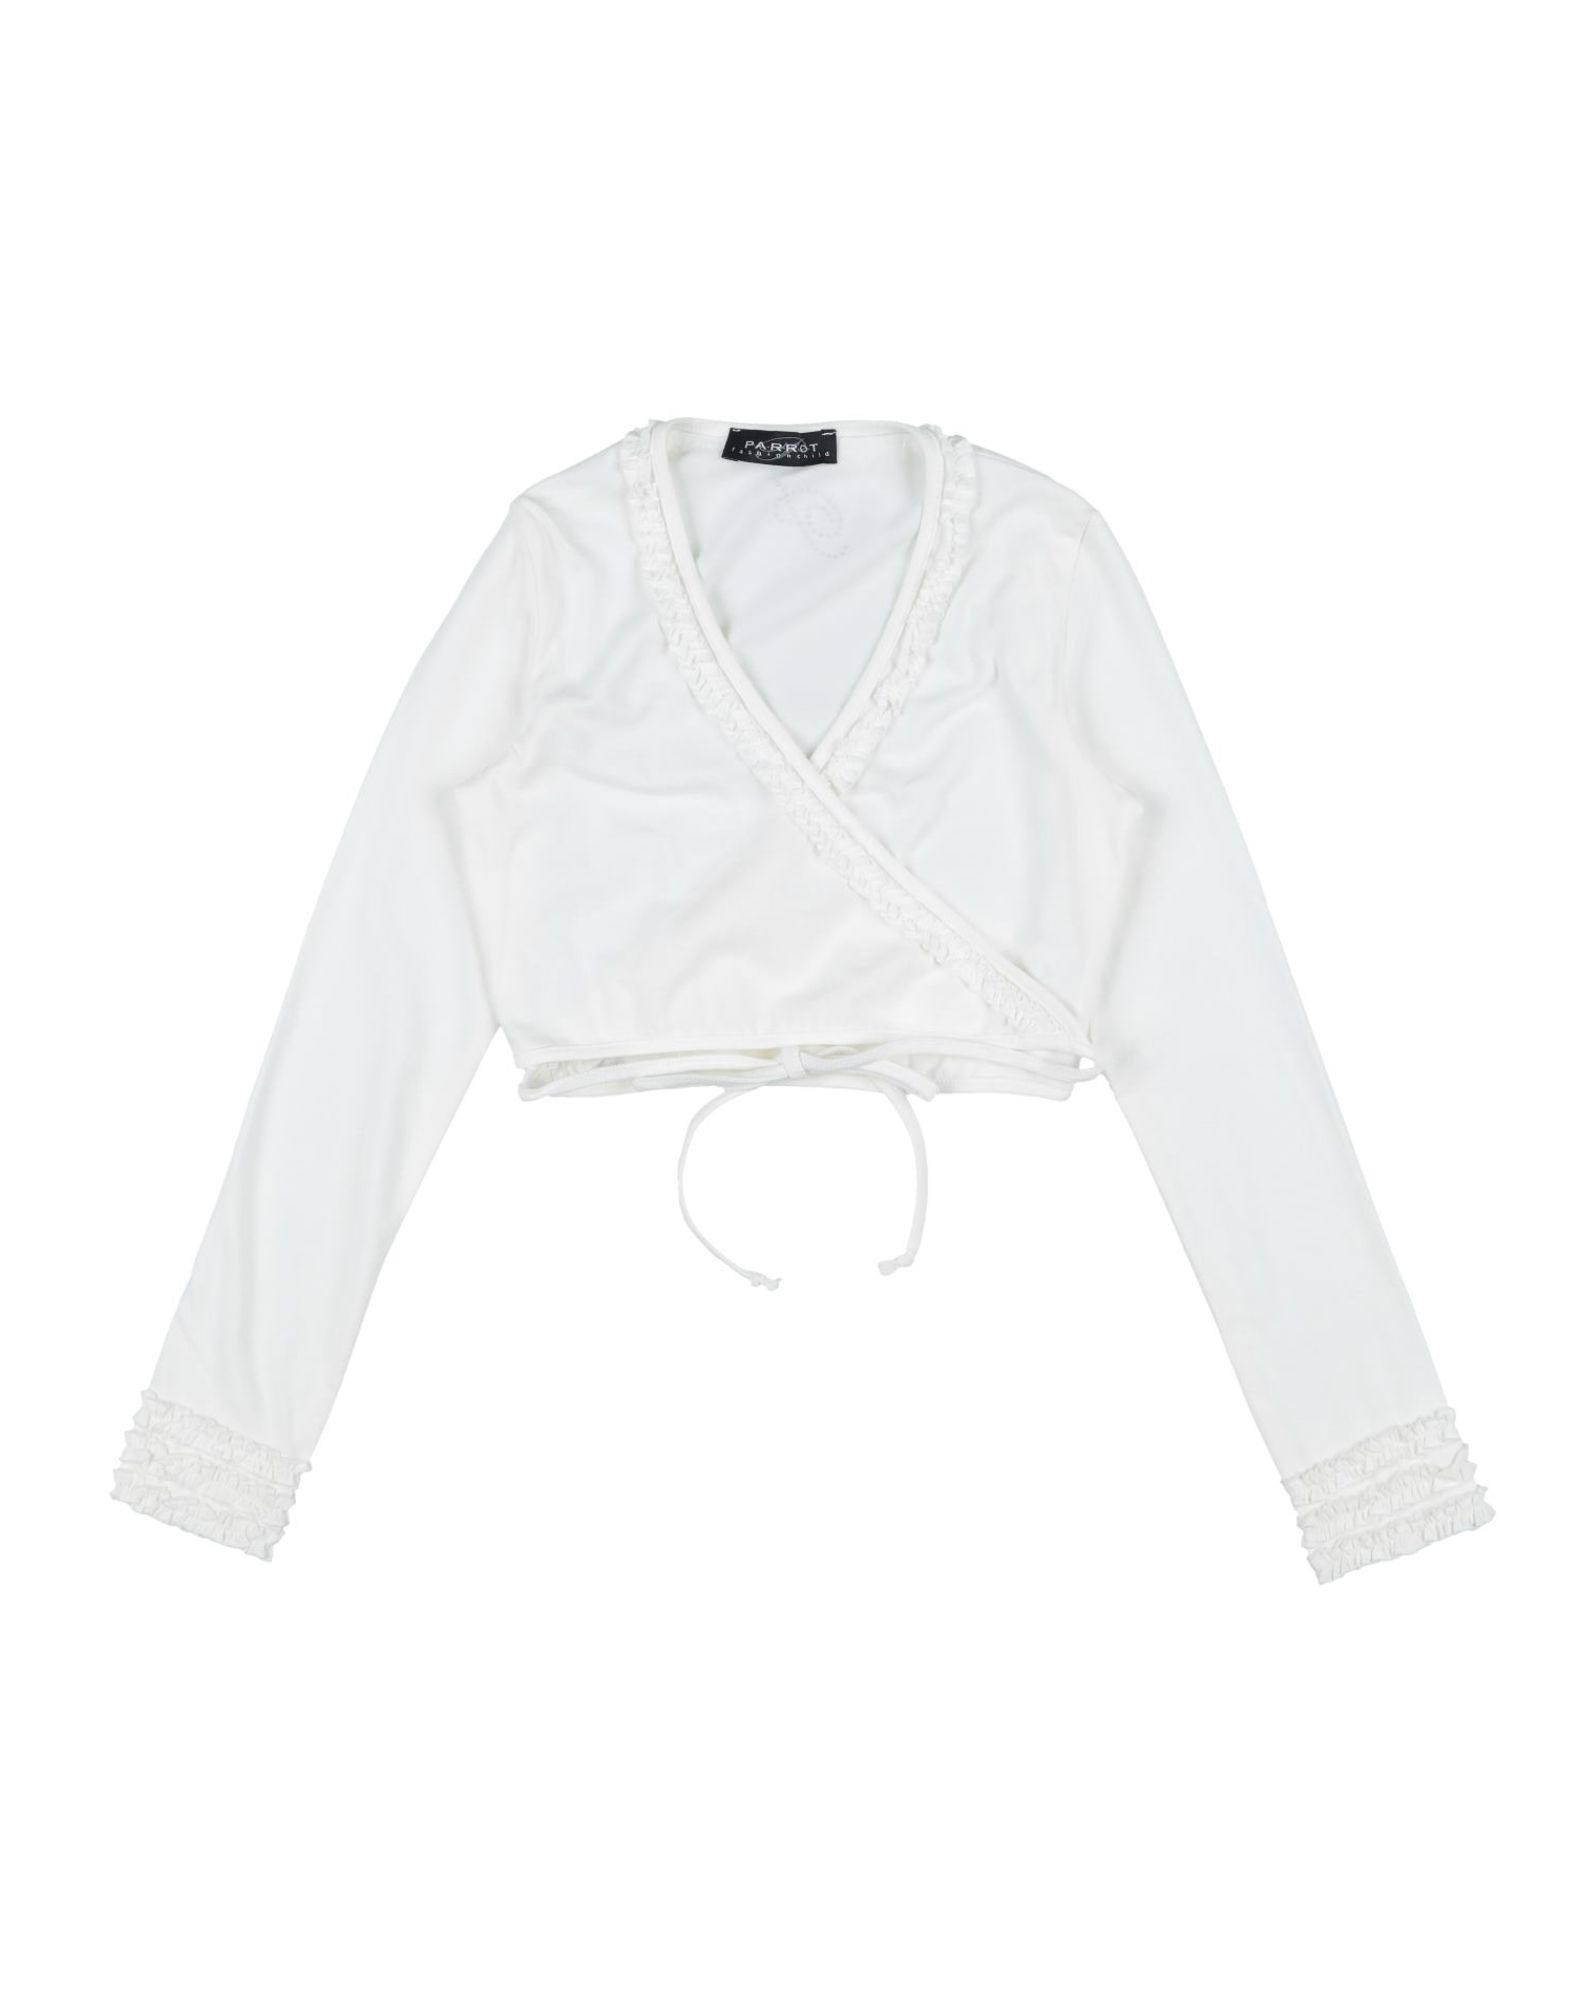 Parrot Kids' Wrap Cardigans In White